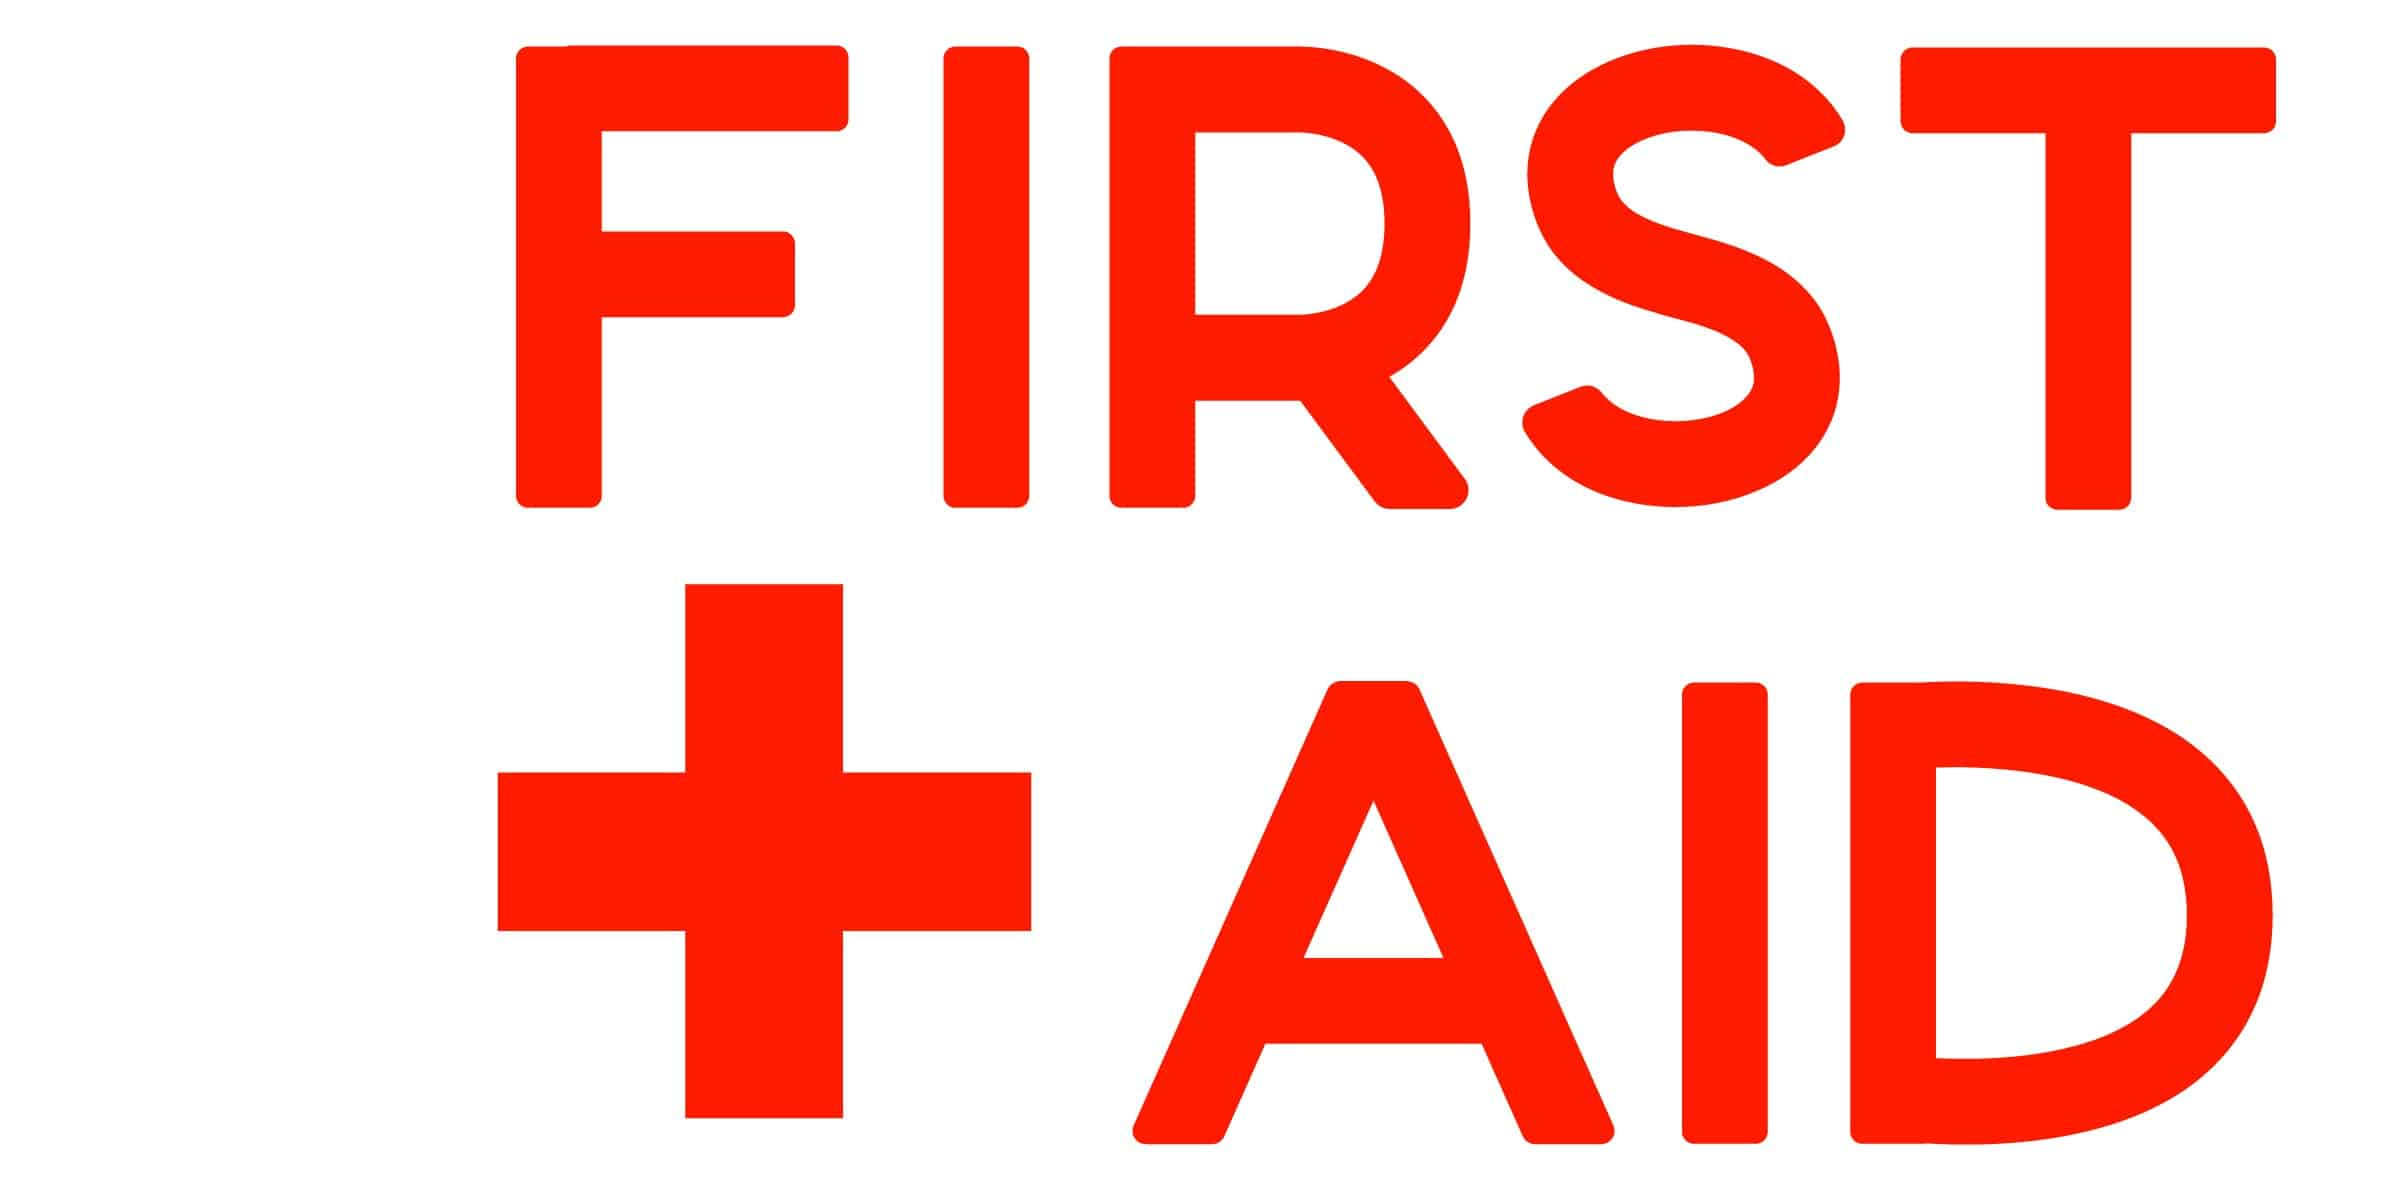 photograph regarding Printable First Aid Sign referred to as 1st Assistance Label Printable - Great Label Tips 2019